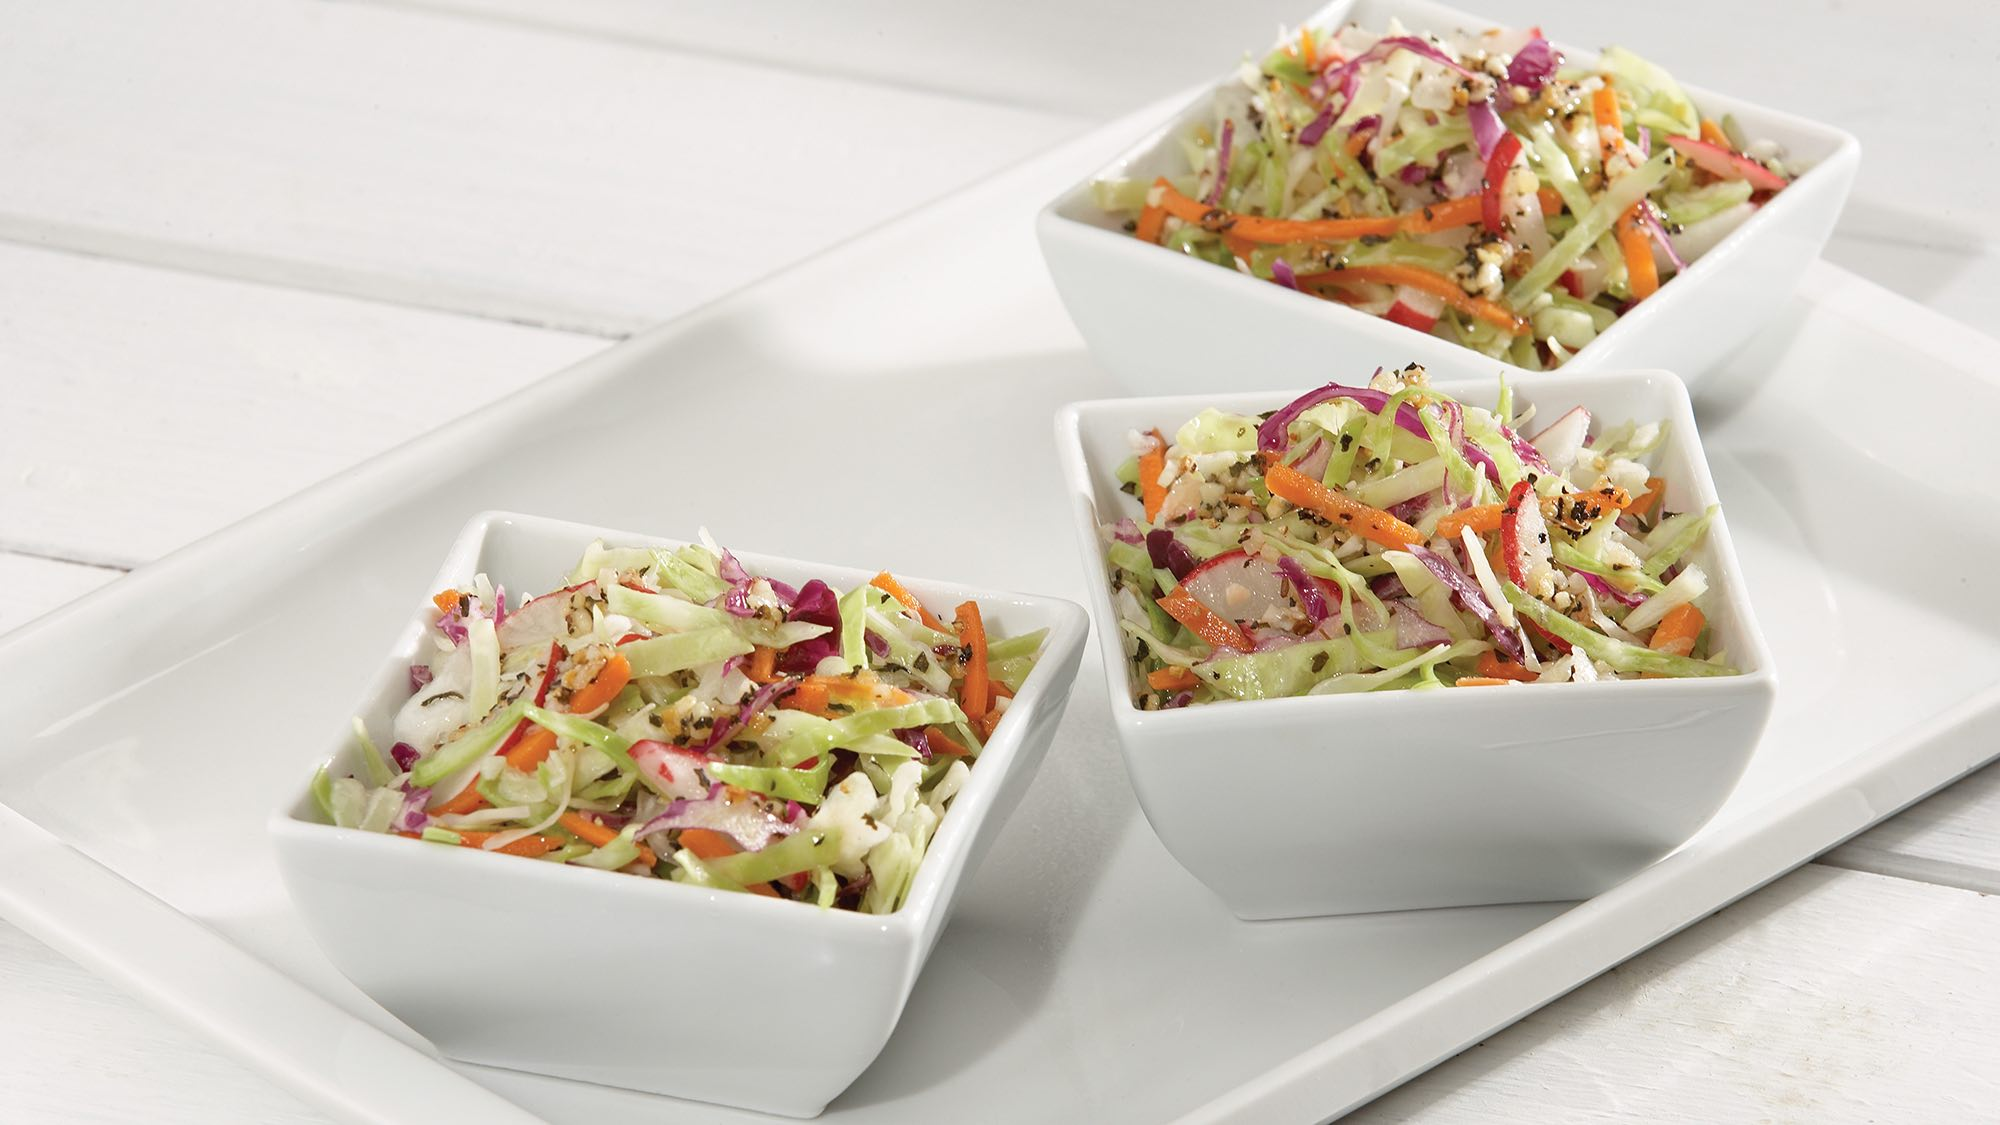 McCormick Coleslaw with Basil and Garlic